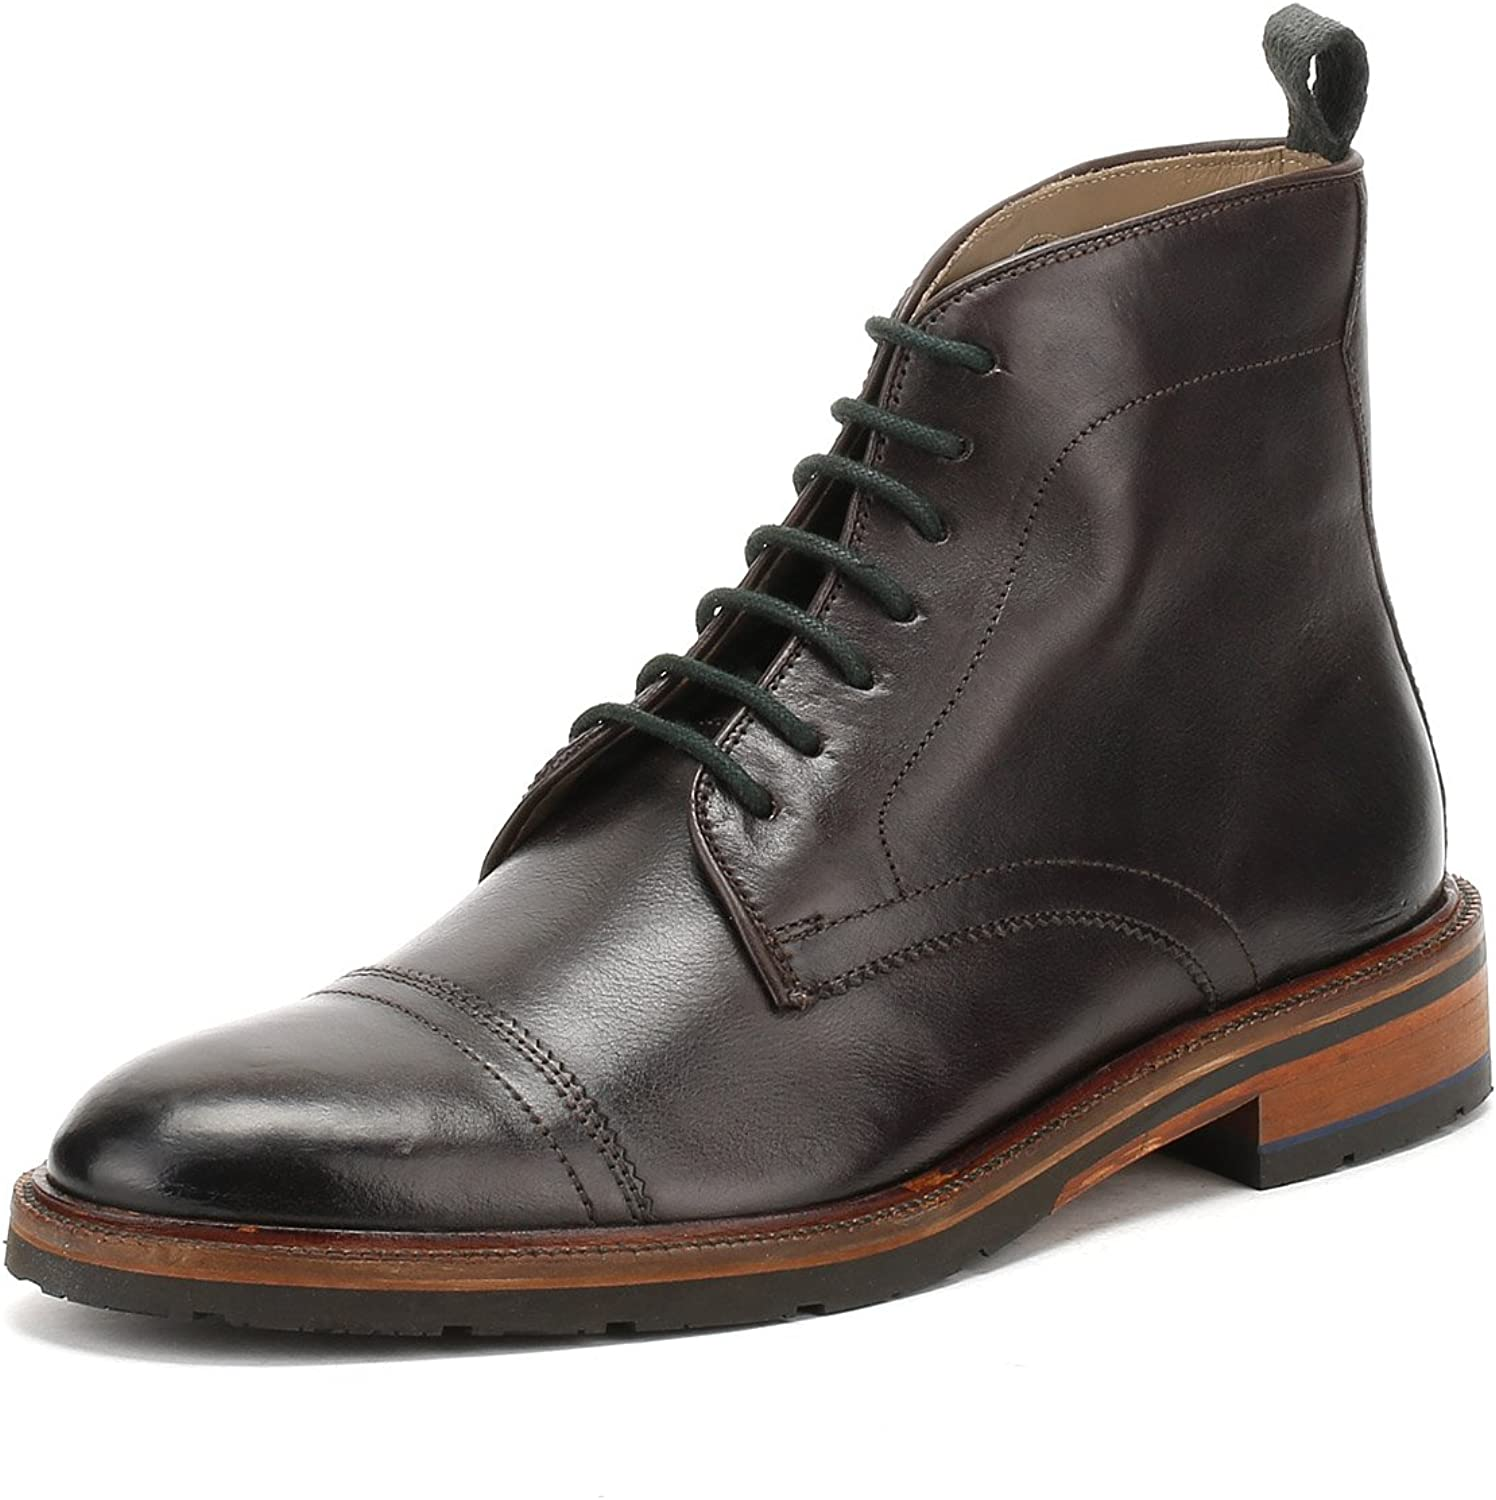 Oliver Sweeney Men's Leather Boxgrove Boots Brown